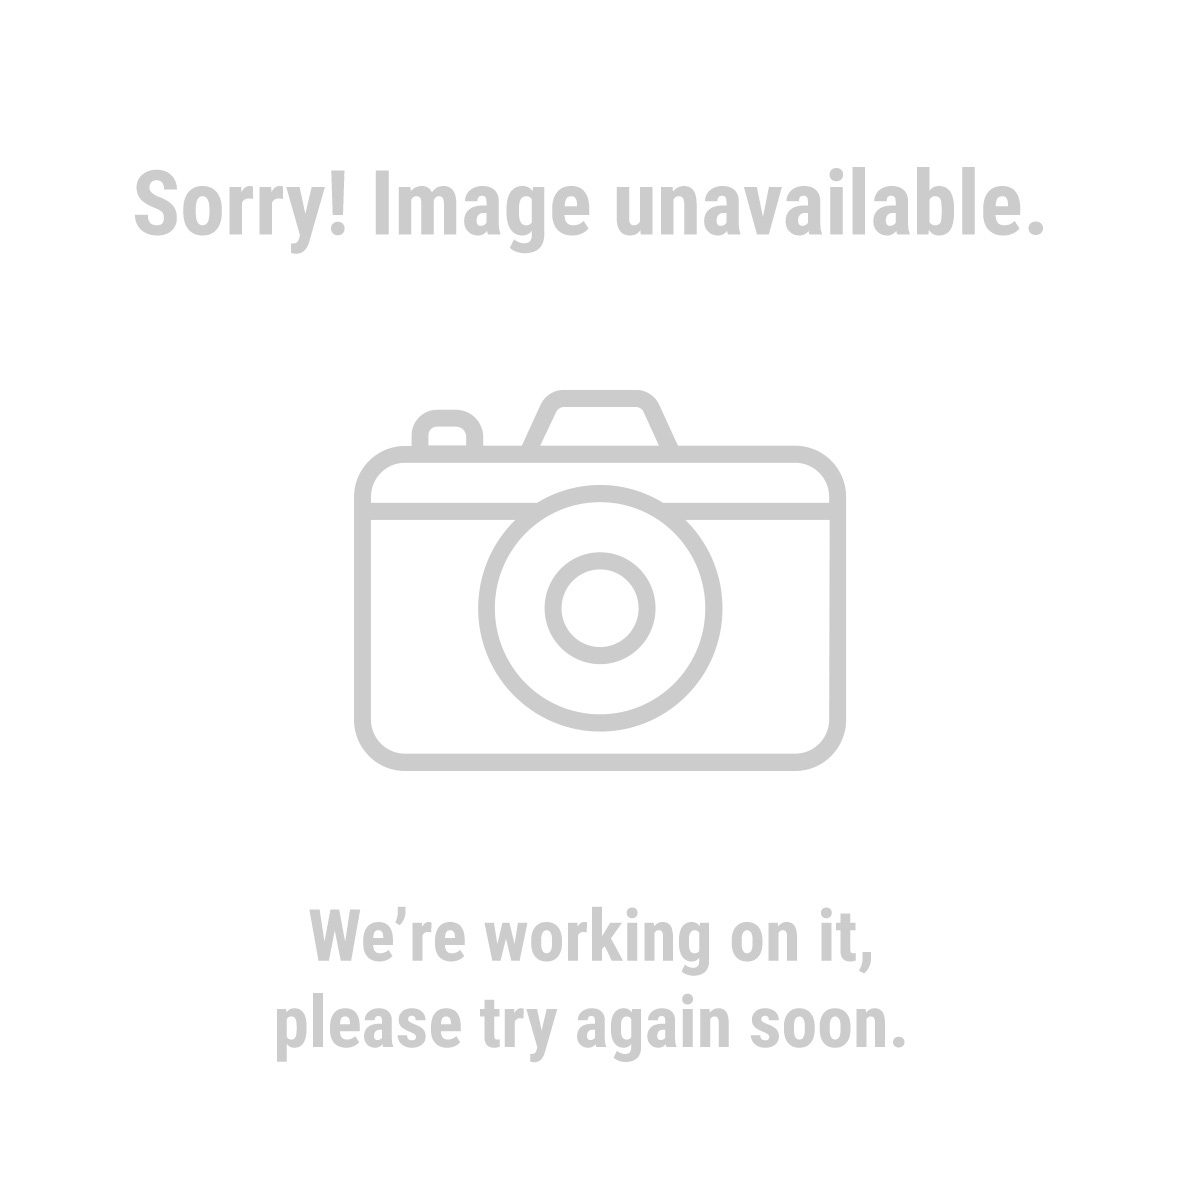 Drill Master 93076 Pack of 10 High Speed Steel Titanium Nitride Drill Bits